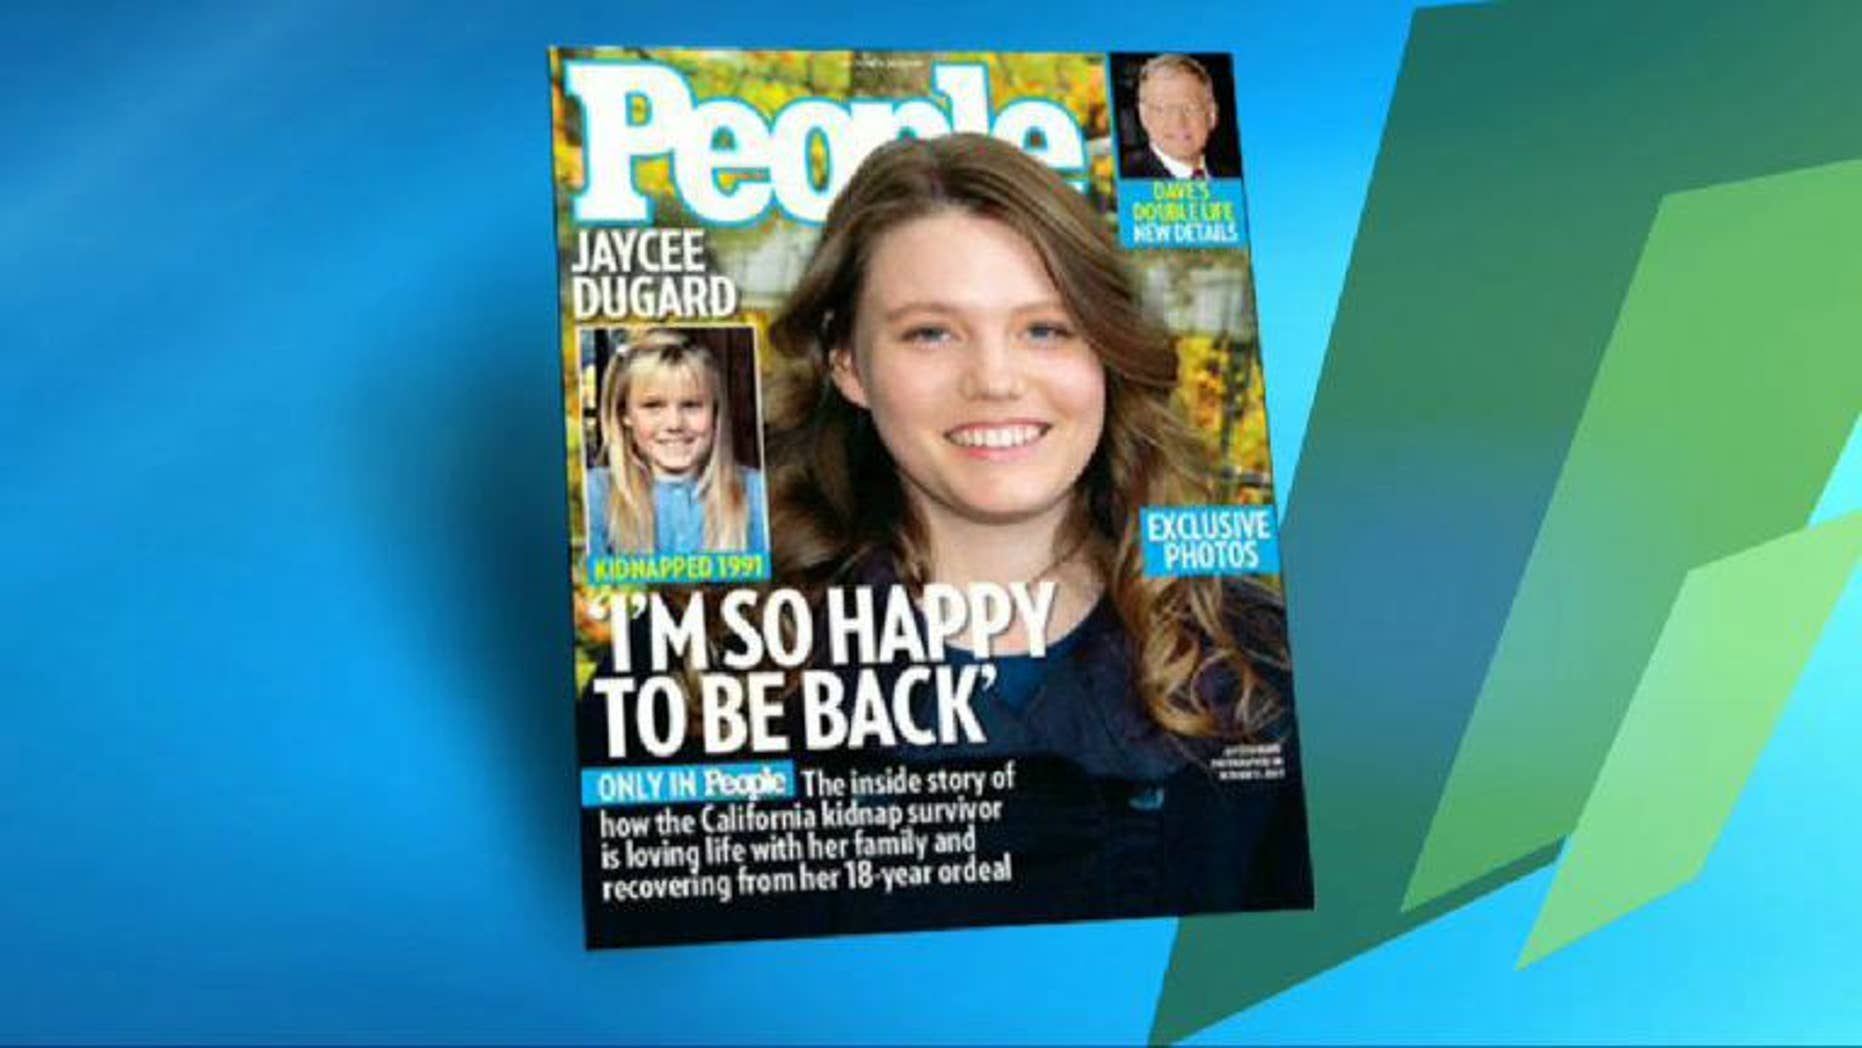 Jaycee Dugard, 31, seen here on the cover of People Magazine, was snatched from a South Lake Tahoe street in 1991 when she was 11 years old.